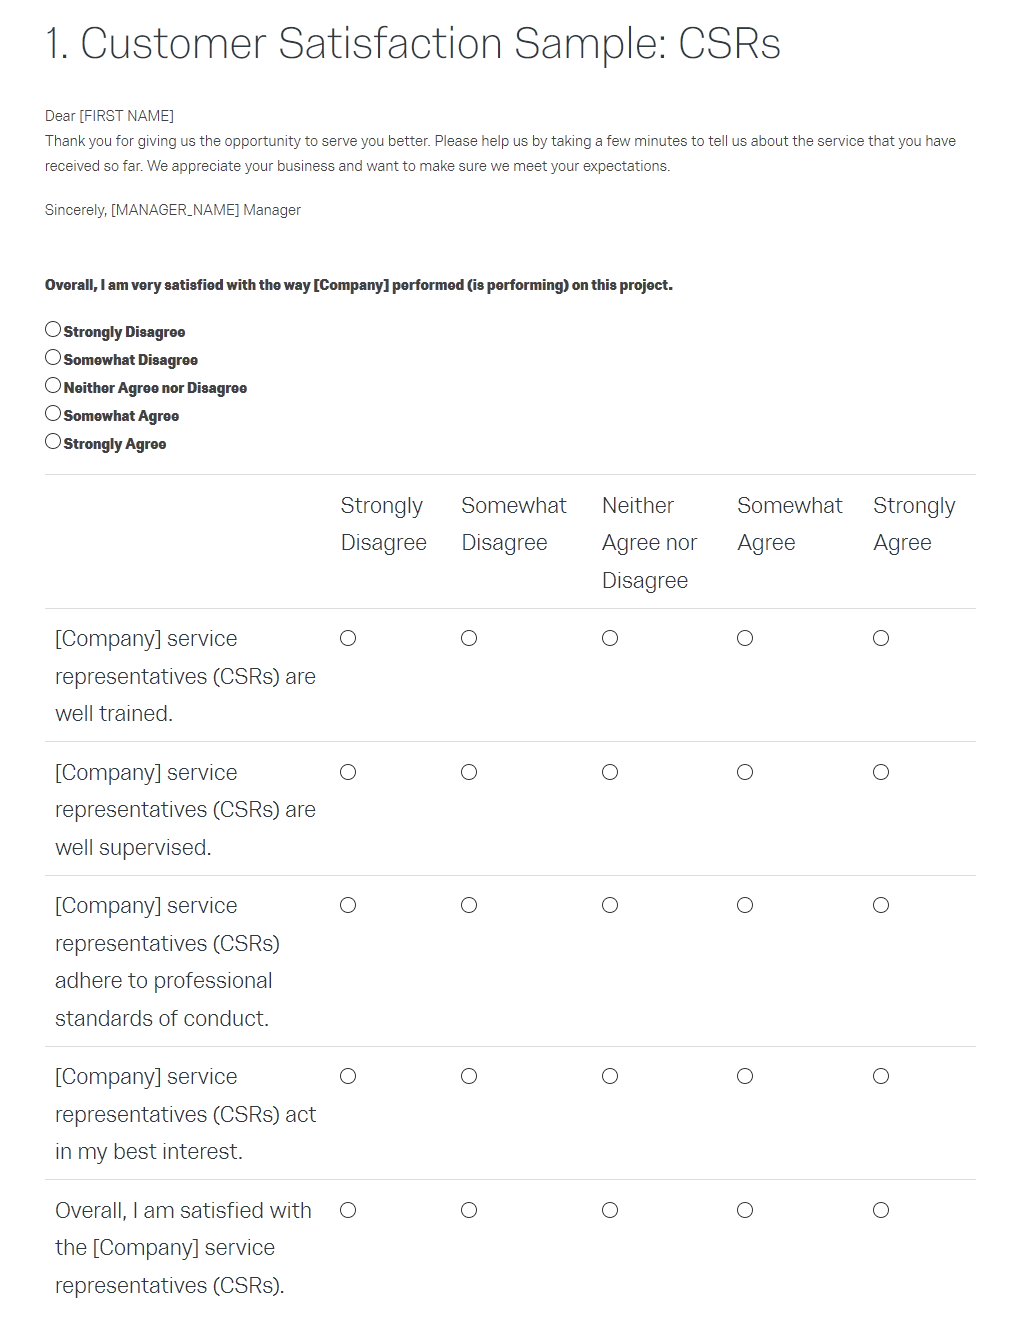 how to create a survey on qualtrics